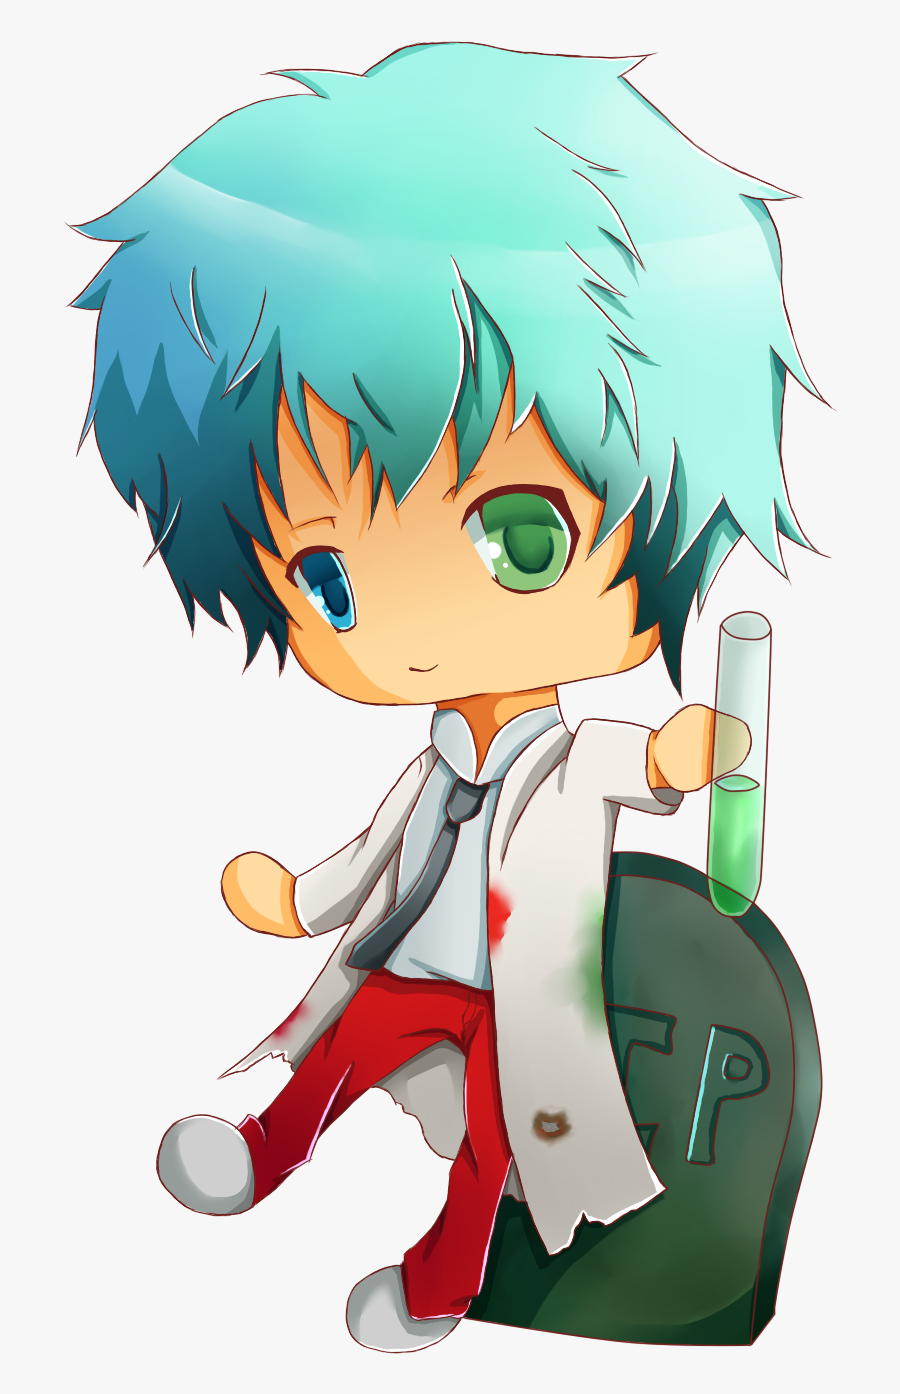 """Verdant Is Known As The """"vampire Robot"""", So I Gave - Anime Chibi Scientist Png, Transparent Clipart"""